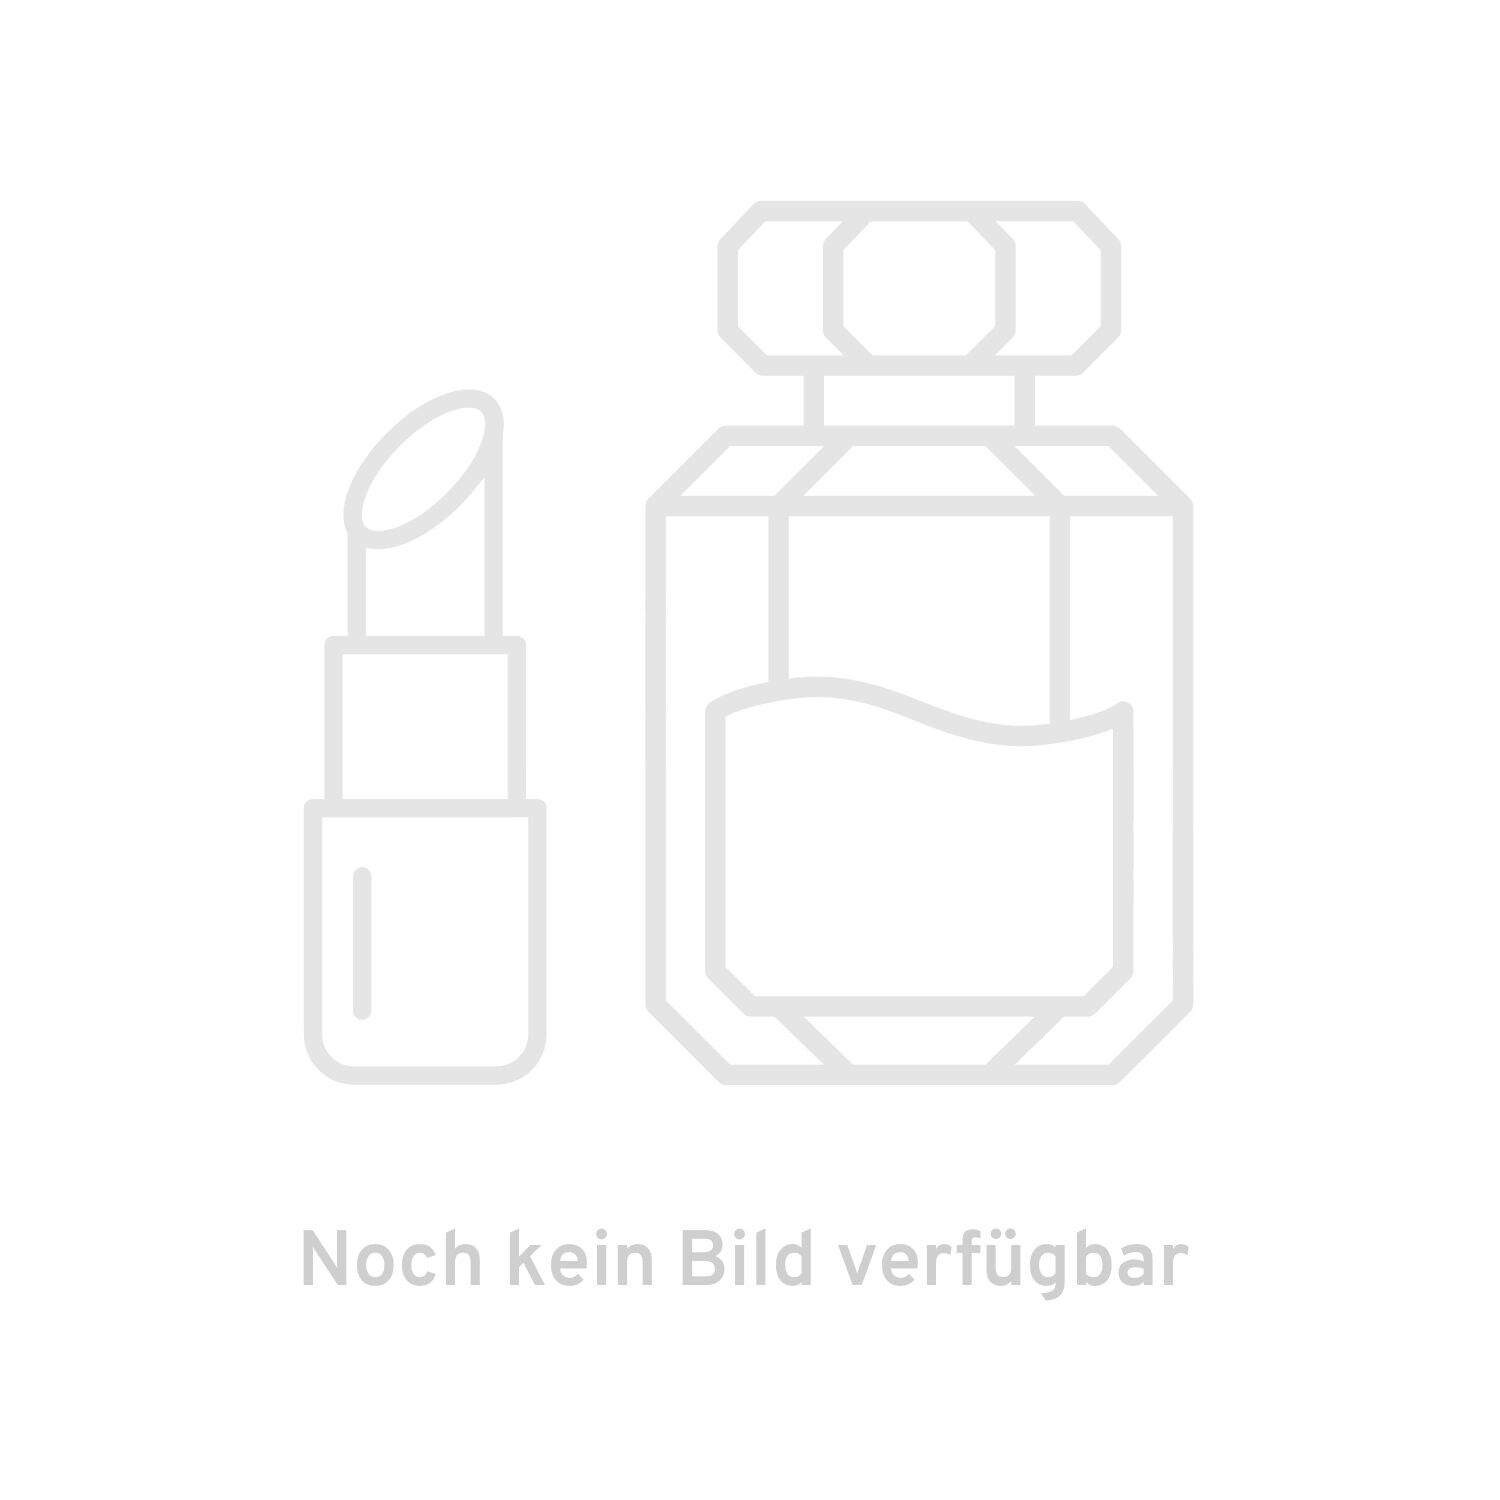 242S Shade Brush